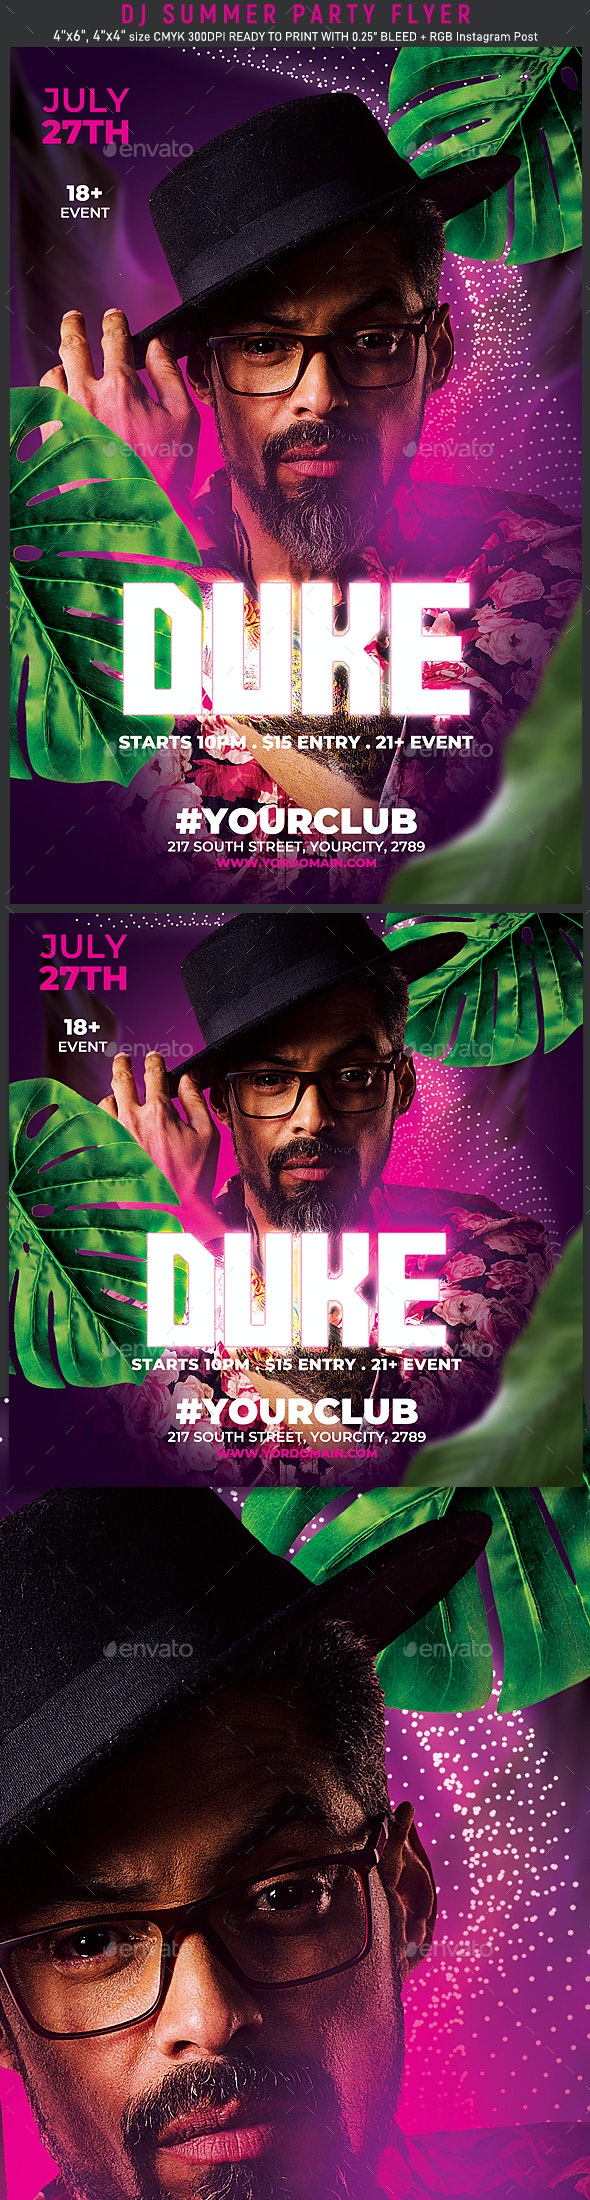 Summer Dj Flyer Template - Events Flyers